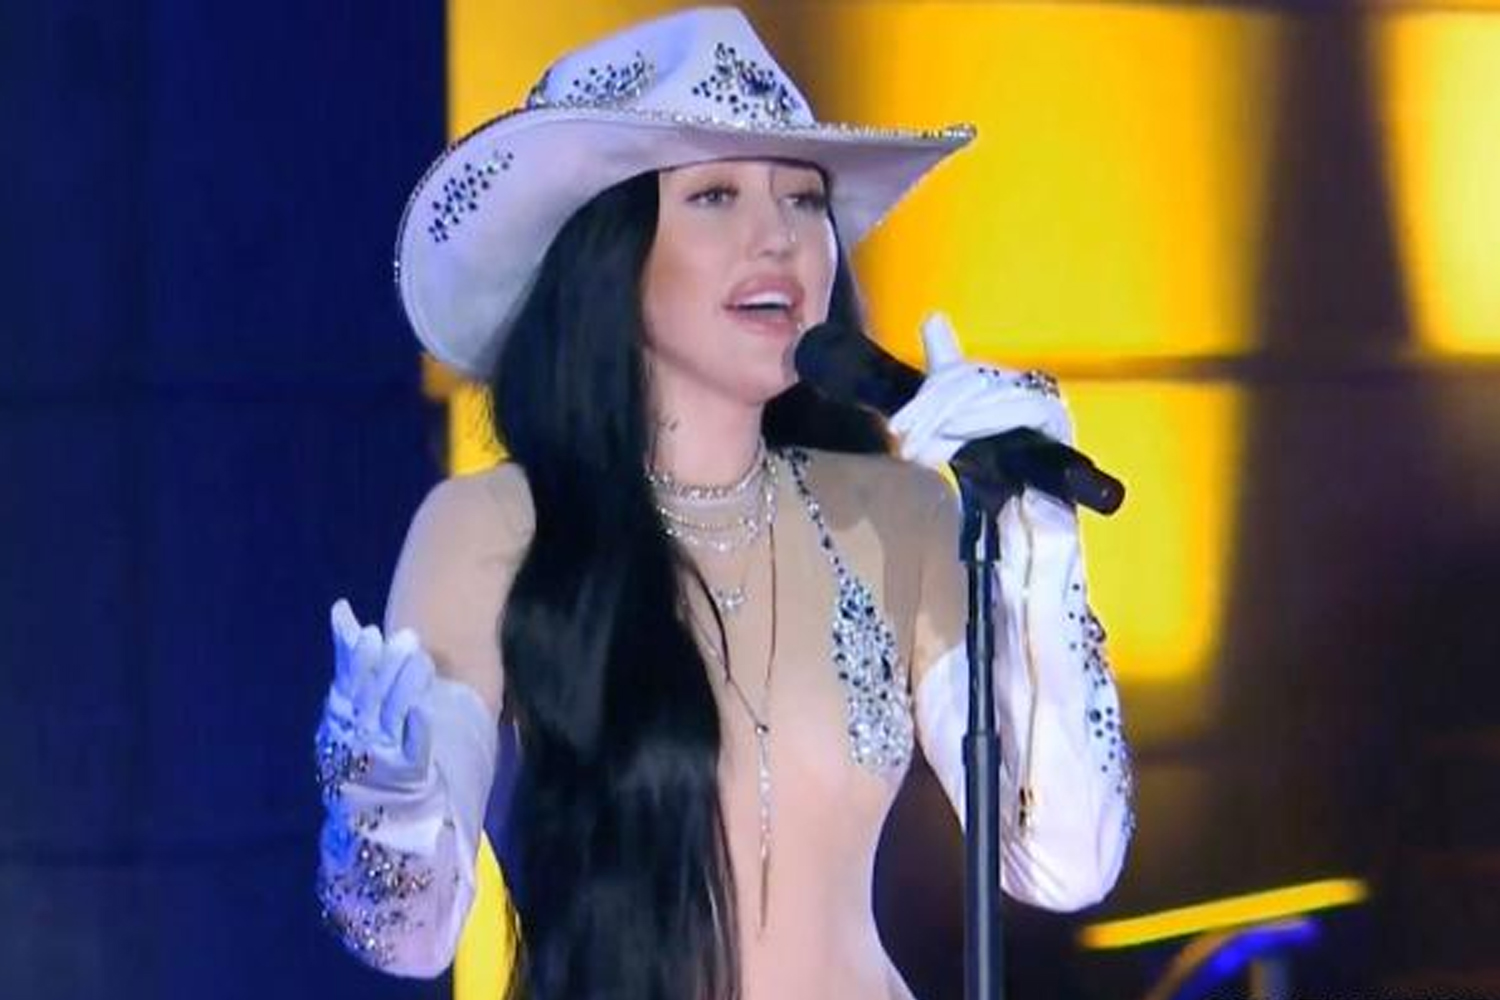 Noah Cyrus has clapped back against haters criticising her nude sheer bodysuit in her recent CMT performance